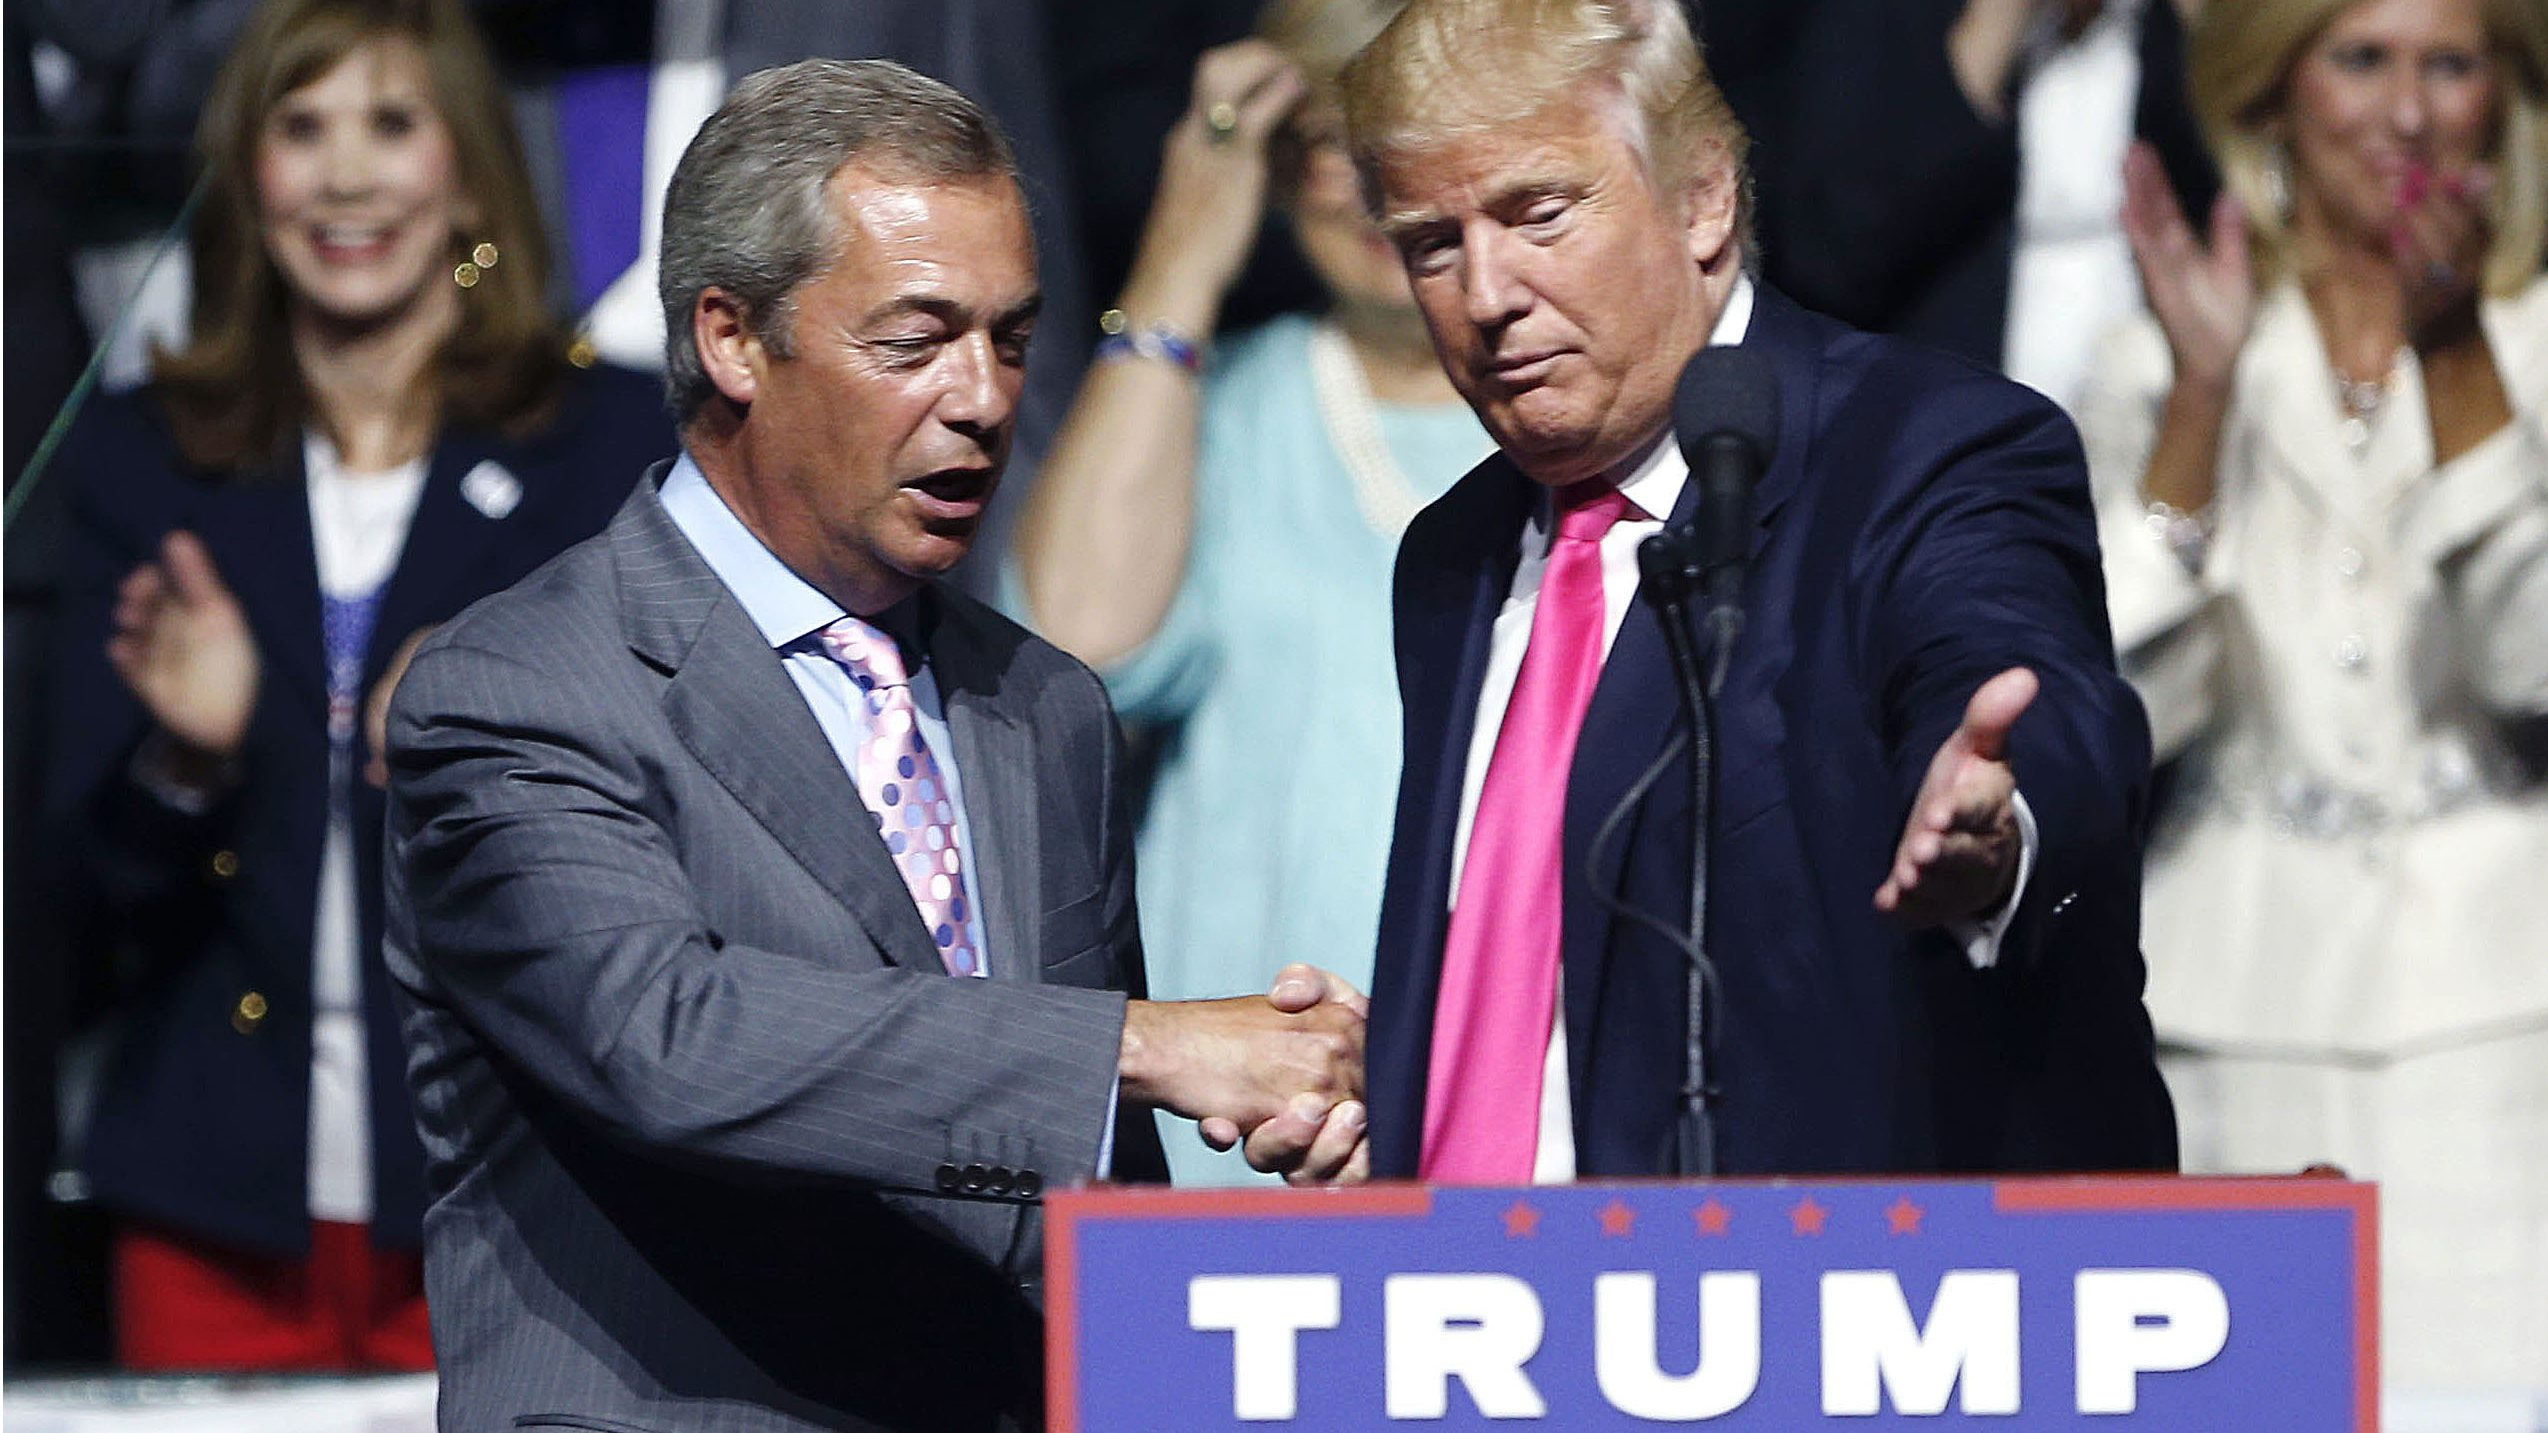 Donald Trump speaks with Nigel Farage.